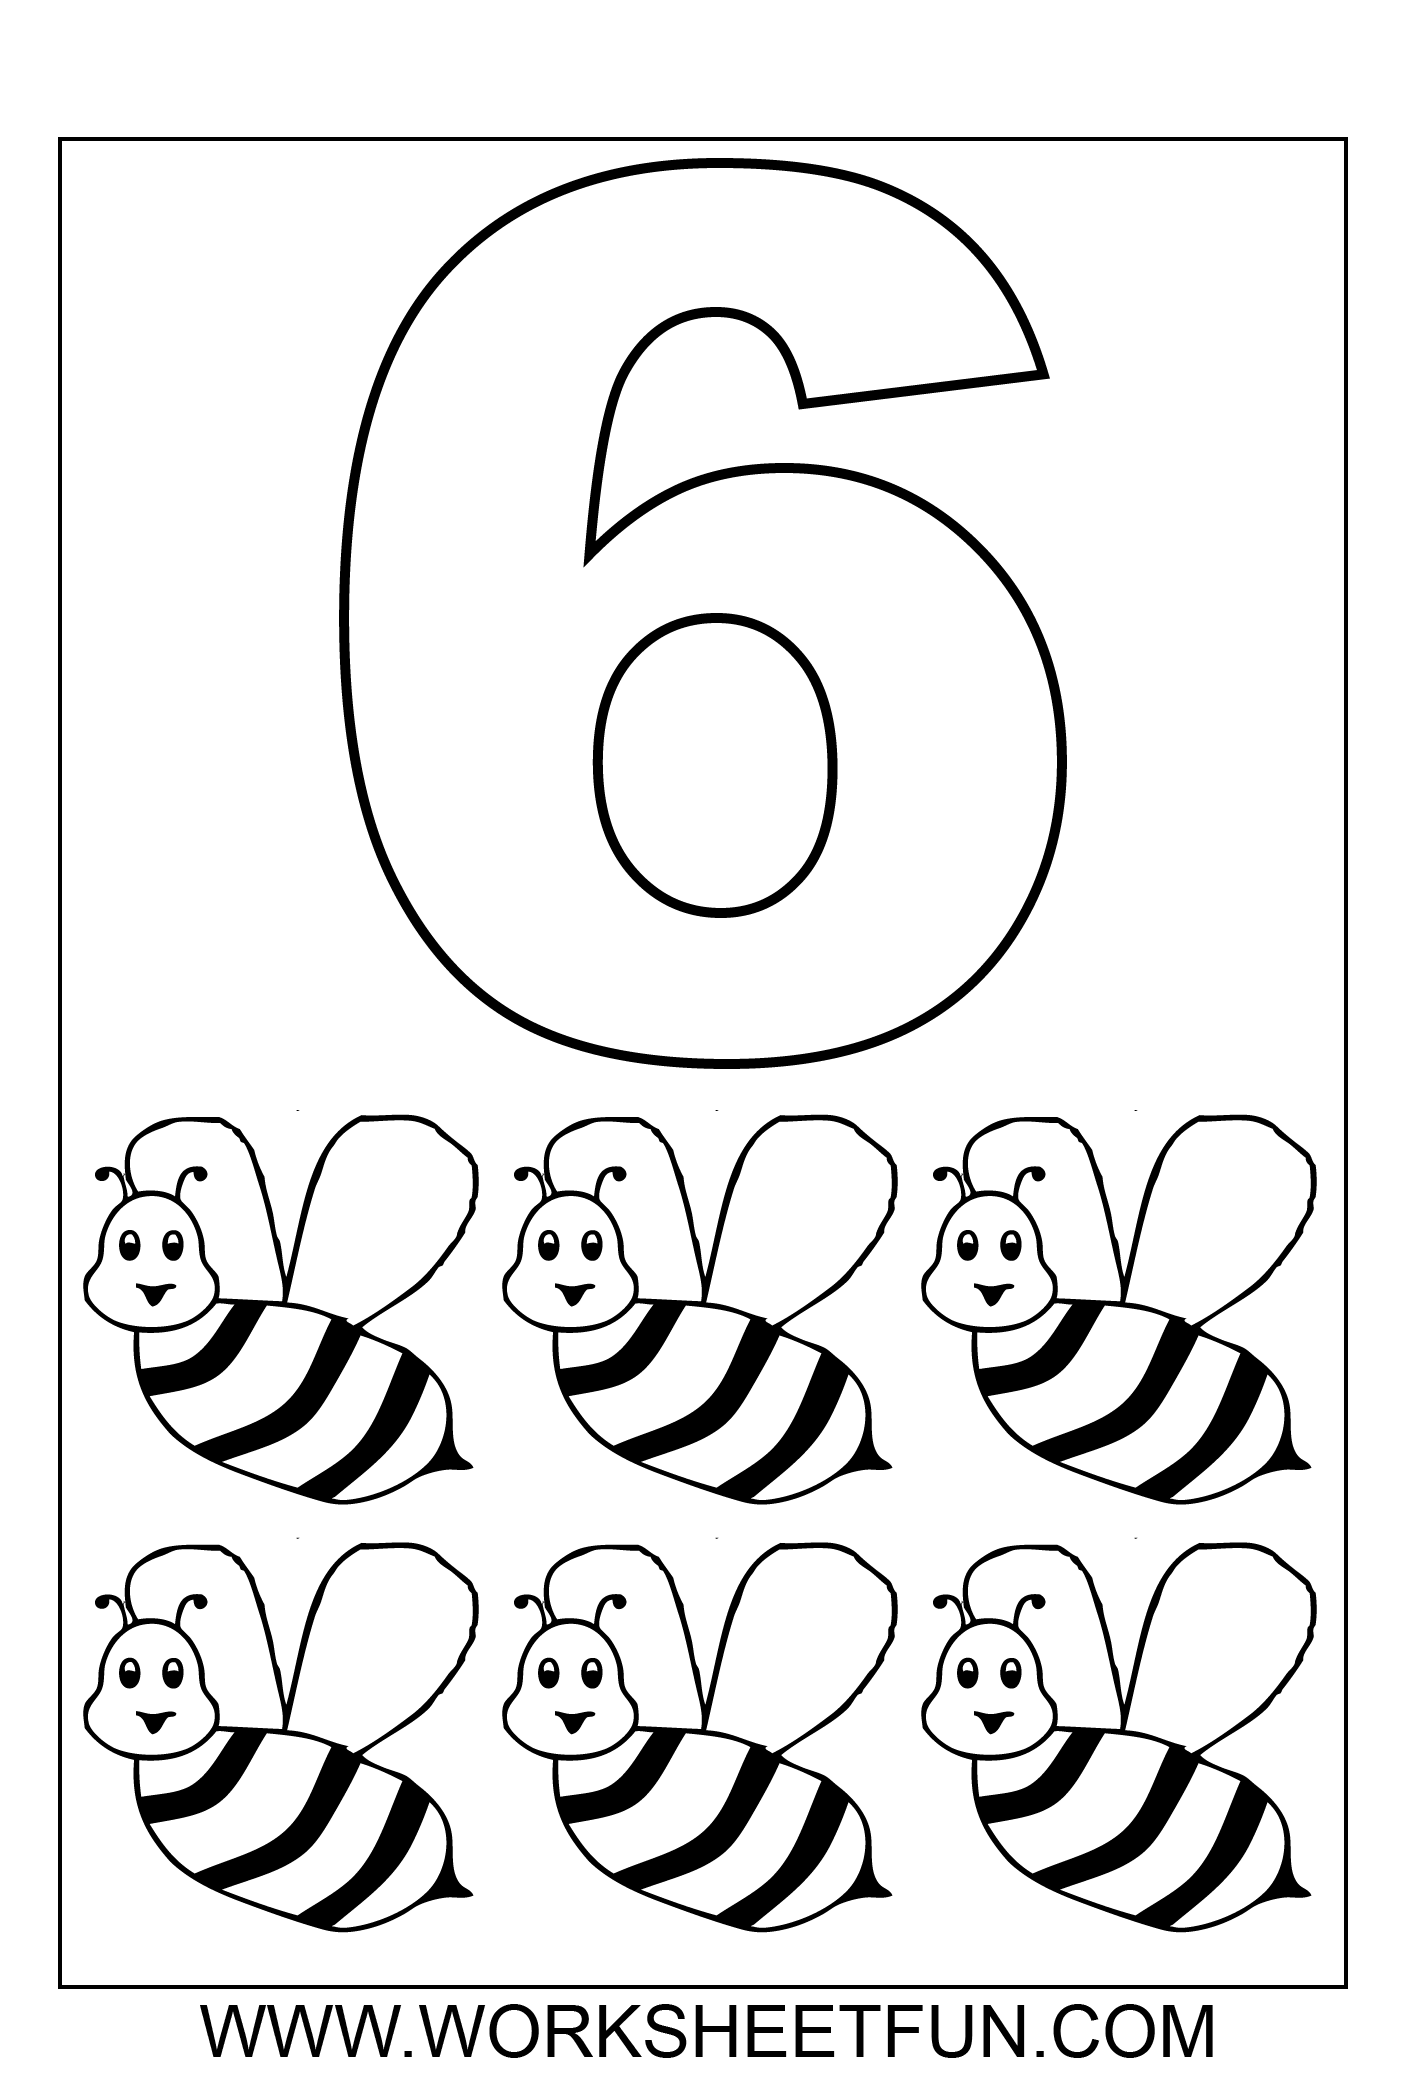 Number Coloring - 1-10 - Ten Worksheets | Printable Worksheets ...